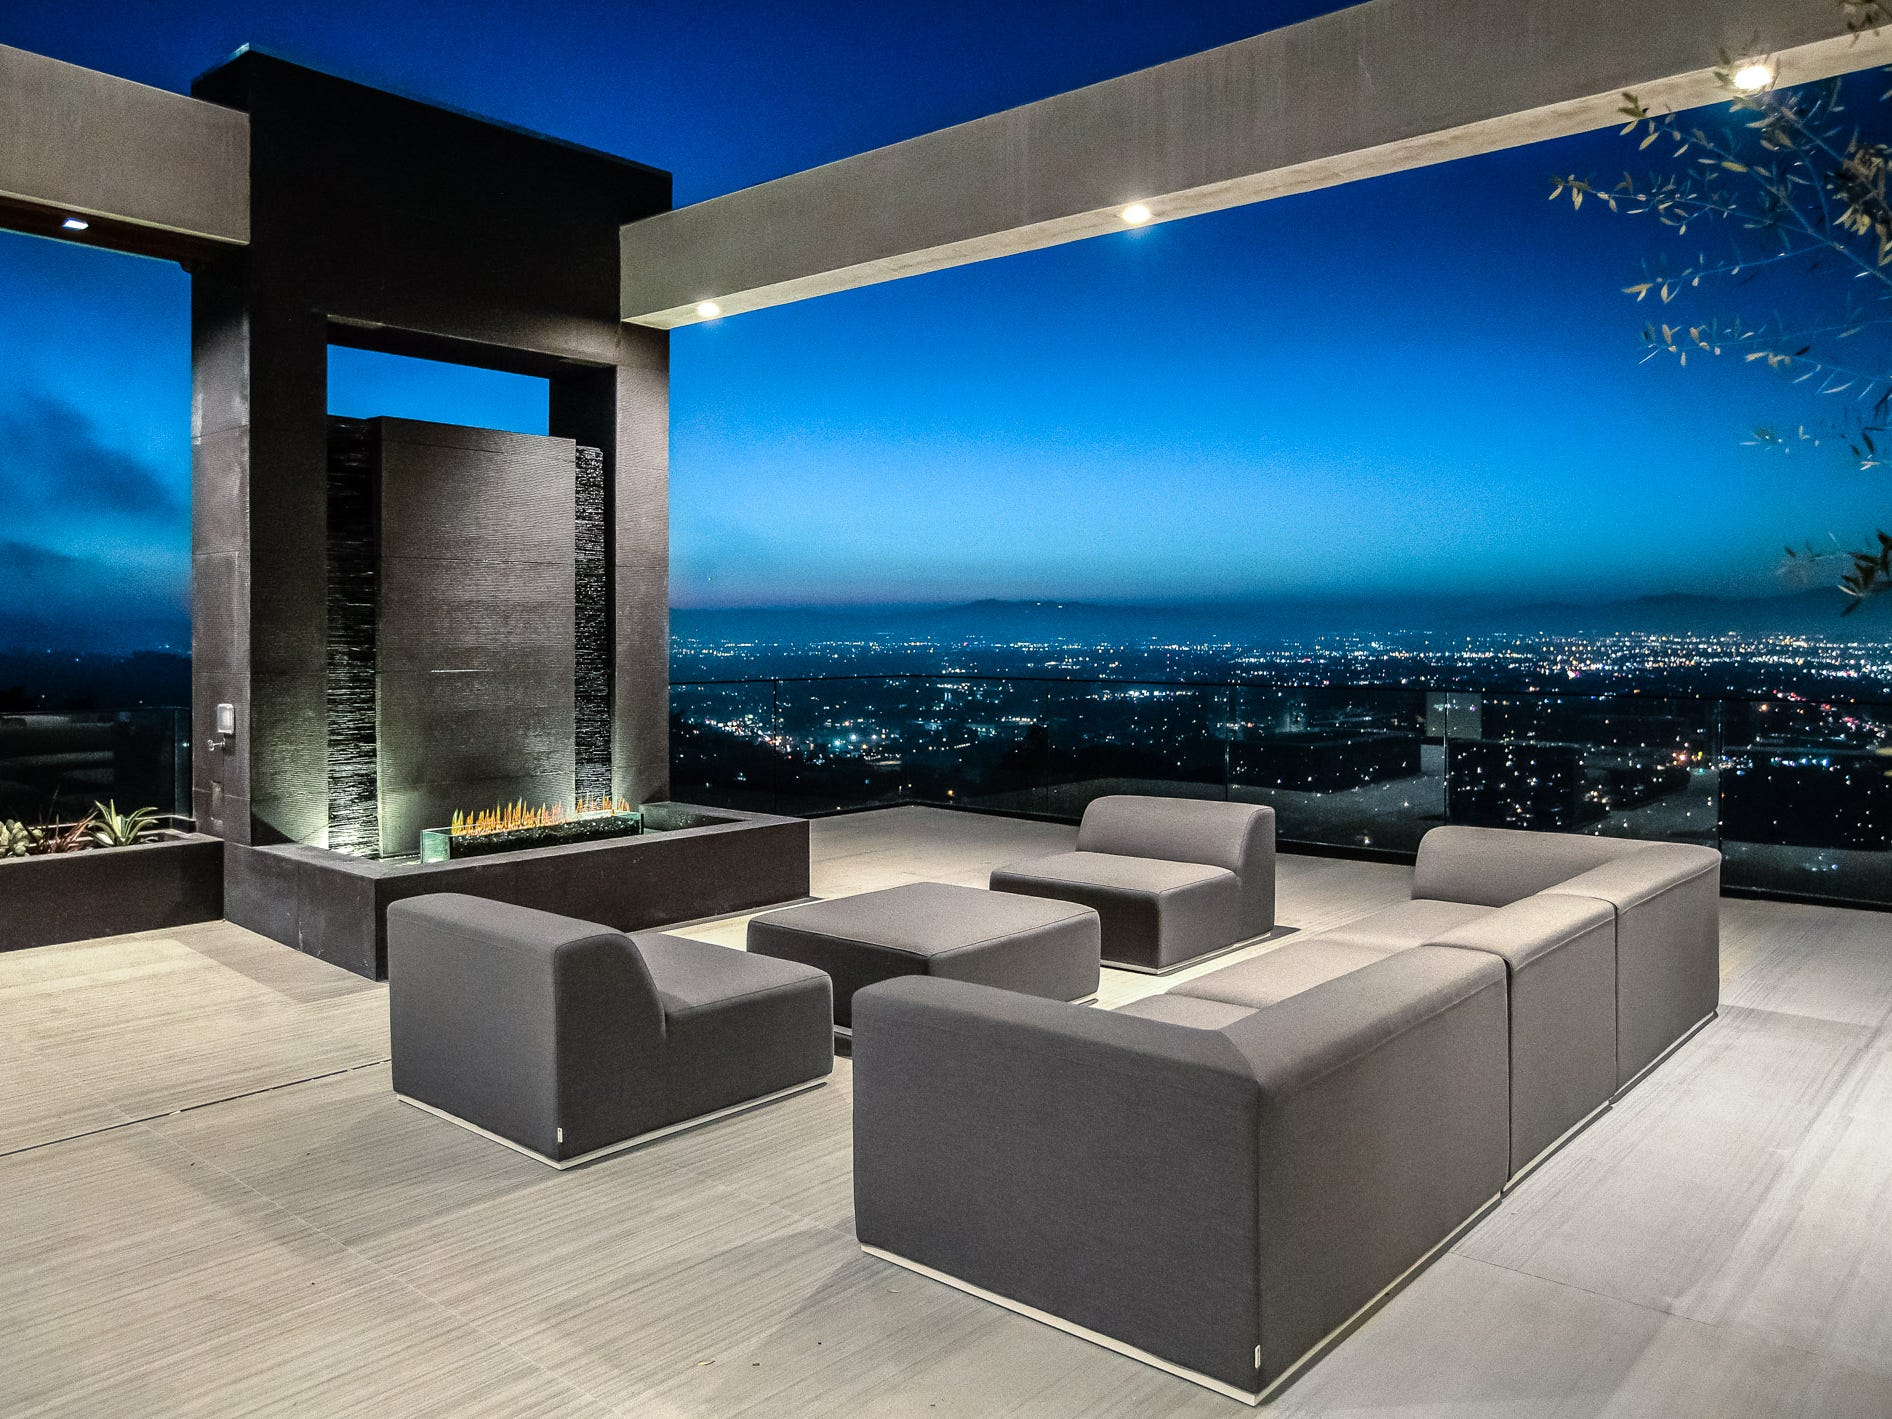 For more information: https://www.luxuryretreats.com/vacation-rentals/united-states/california-los-angeles/hollywood/skybox-villa-122564